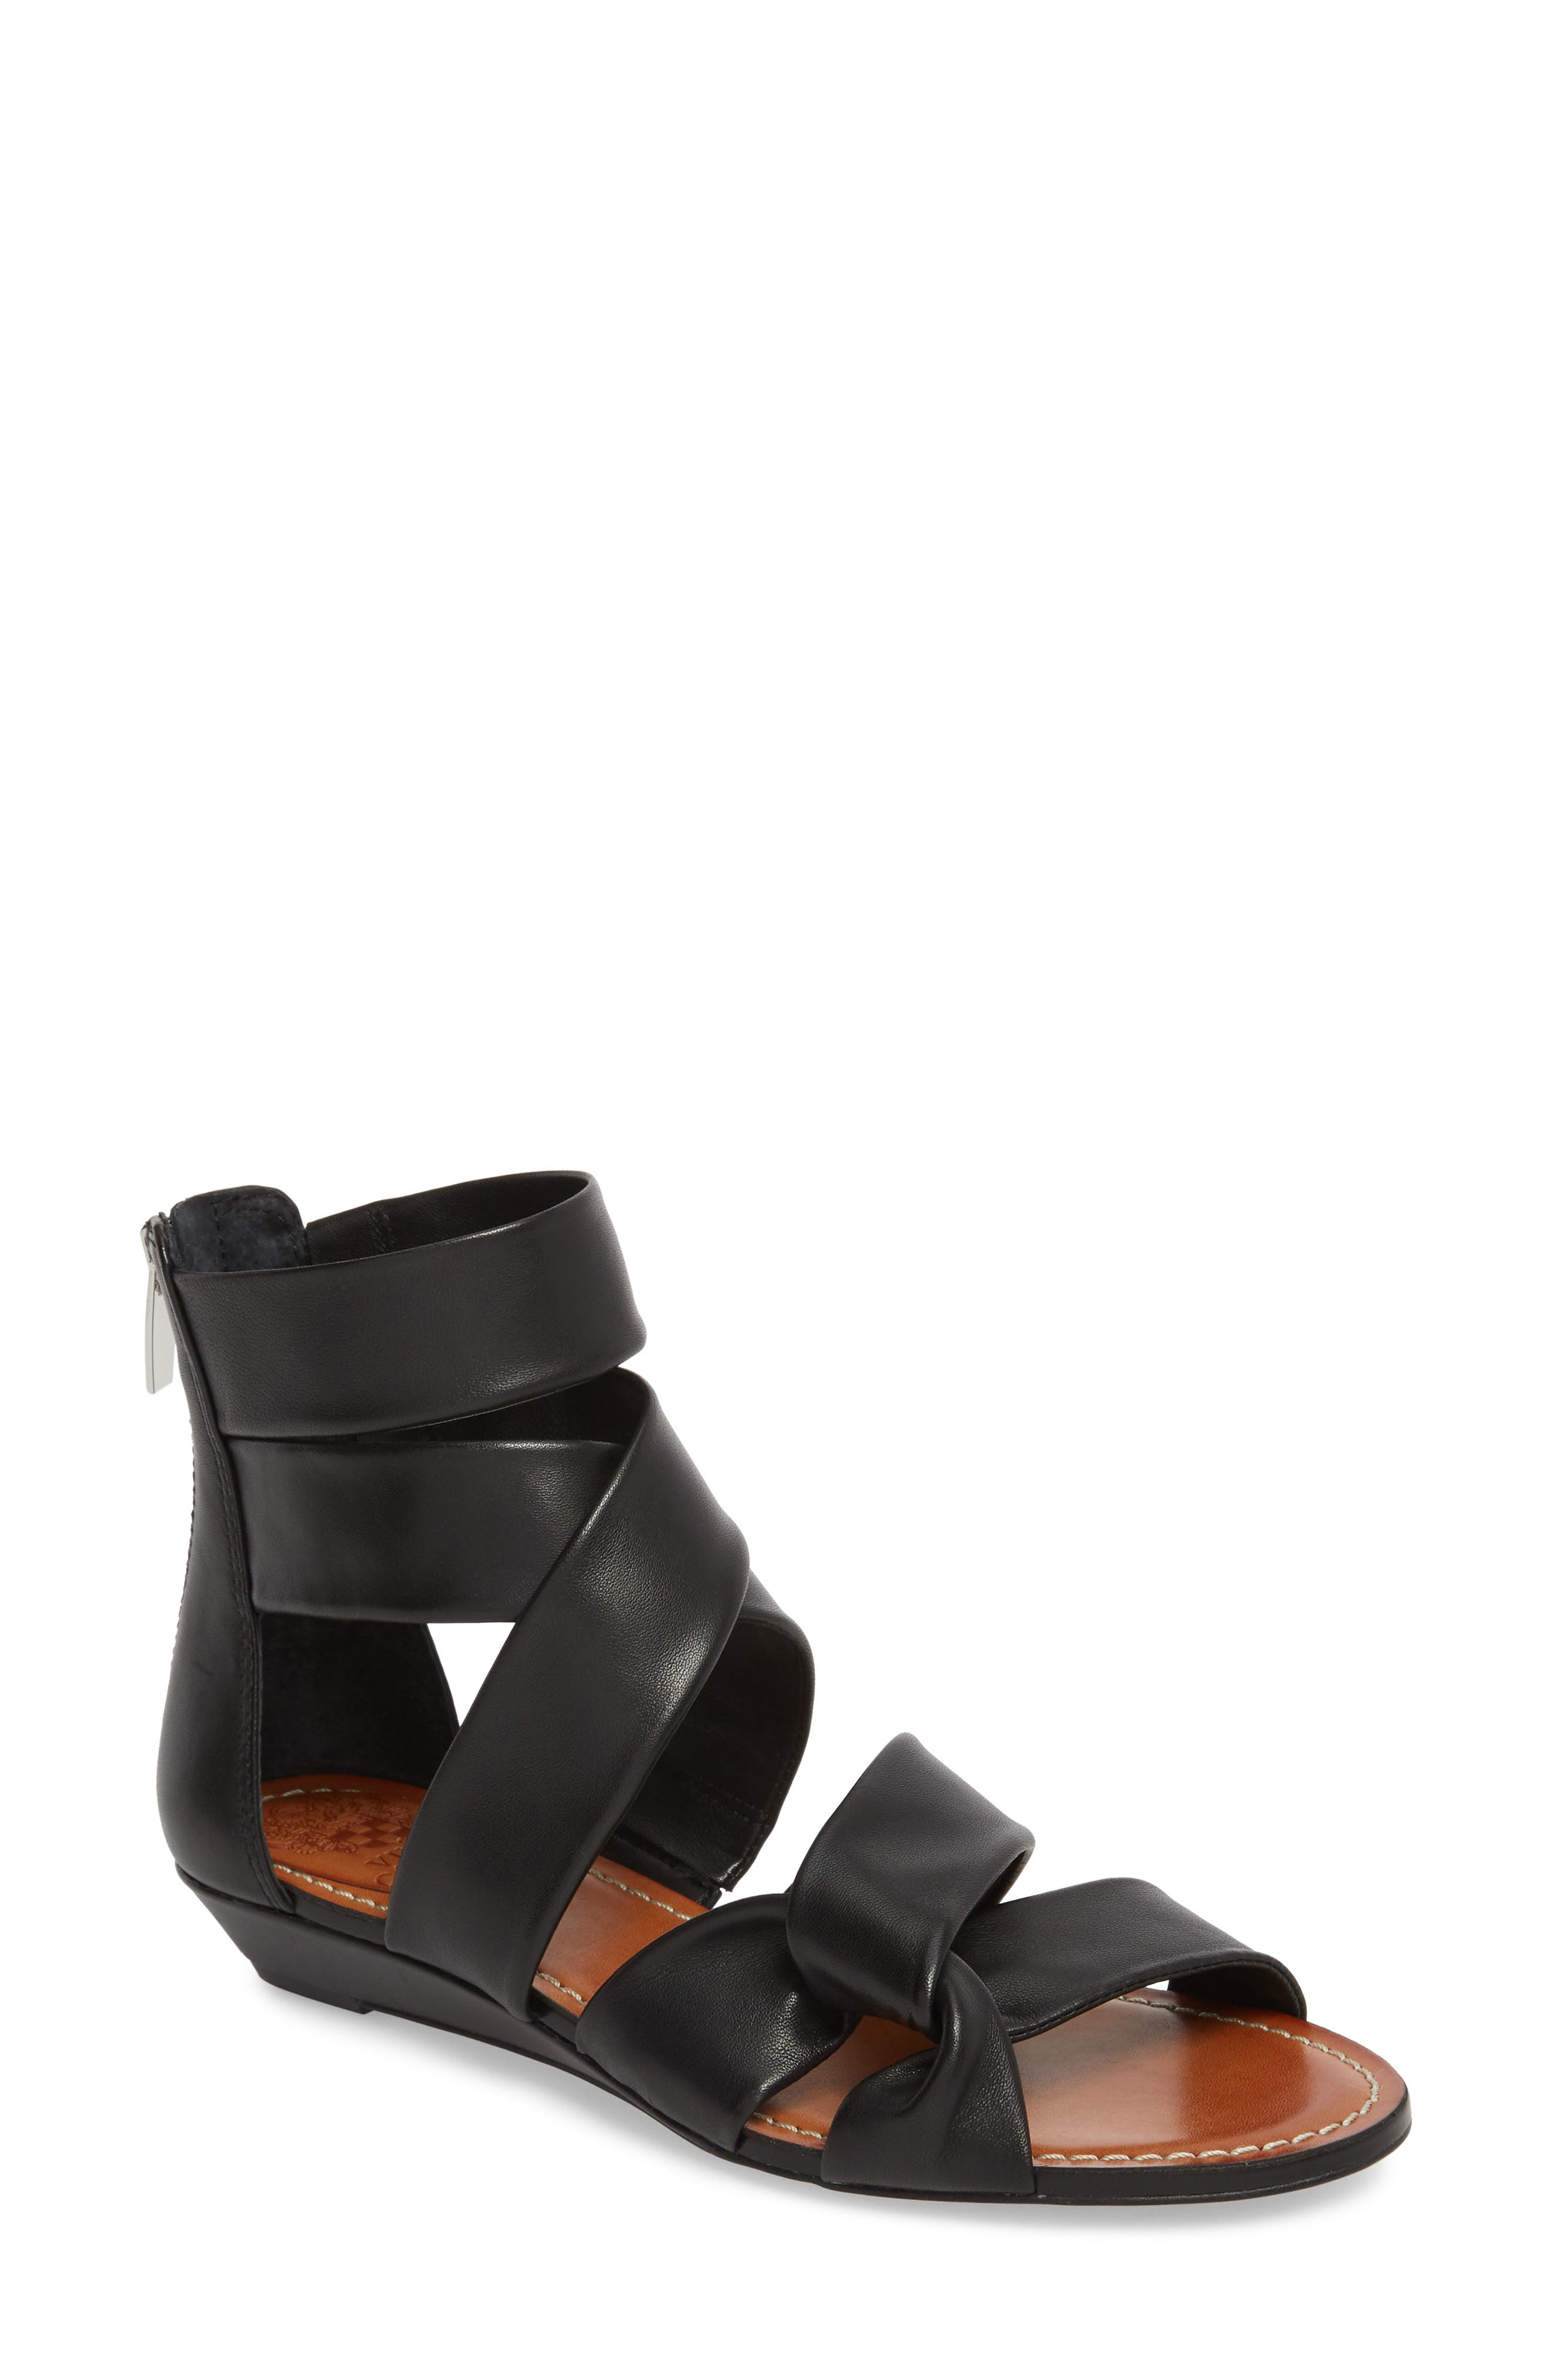 Seevina Low Wedge Sandal,                         Main,                         color, BLACK LEATHER